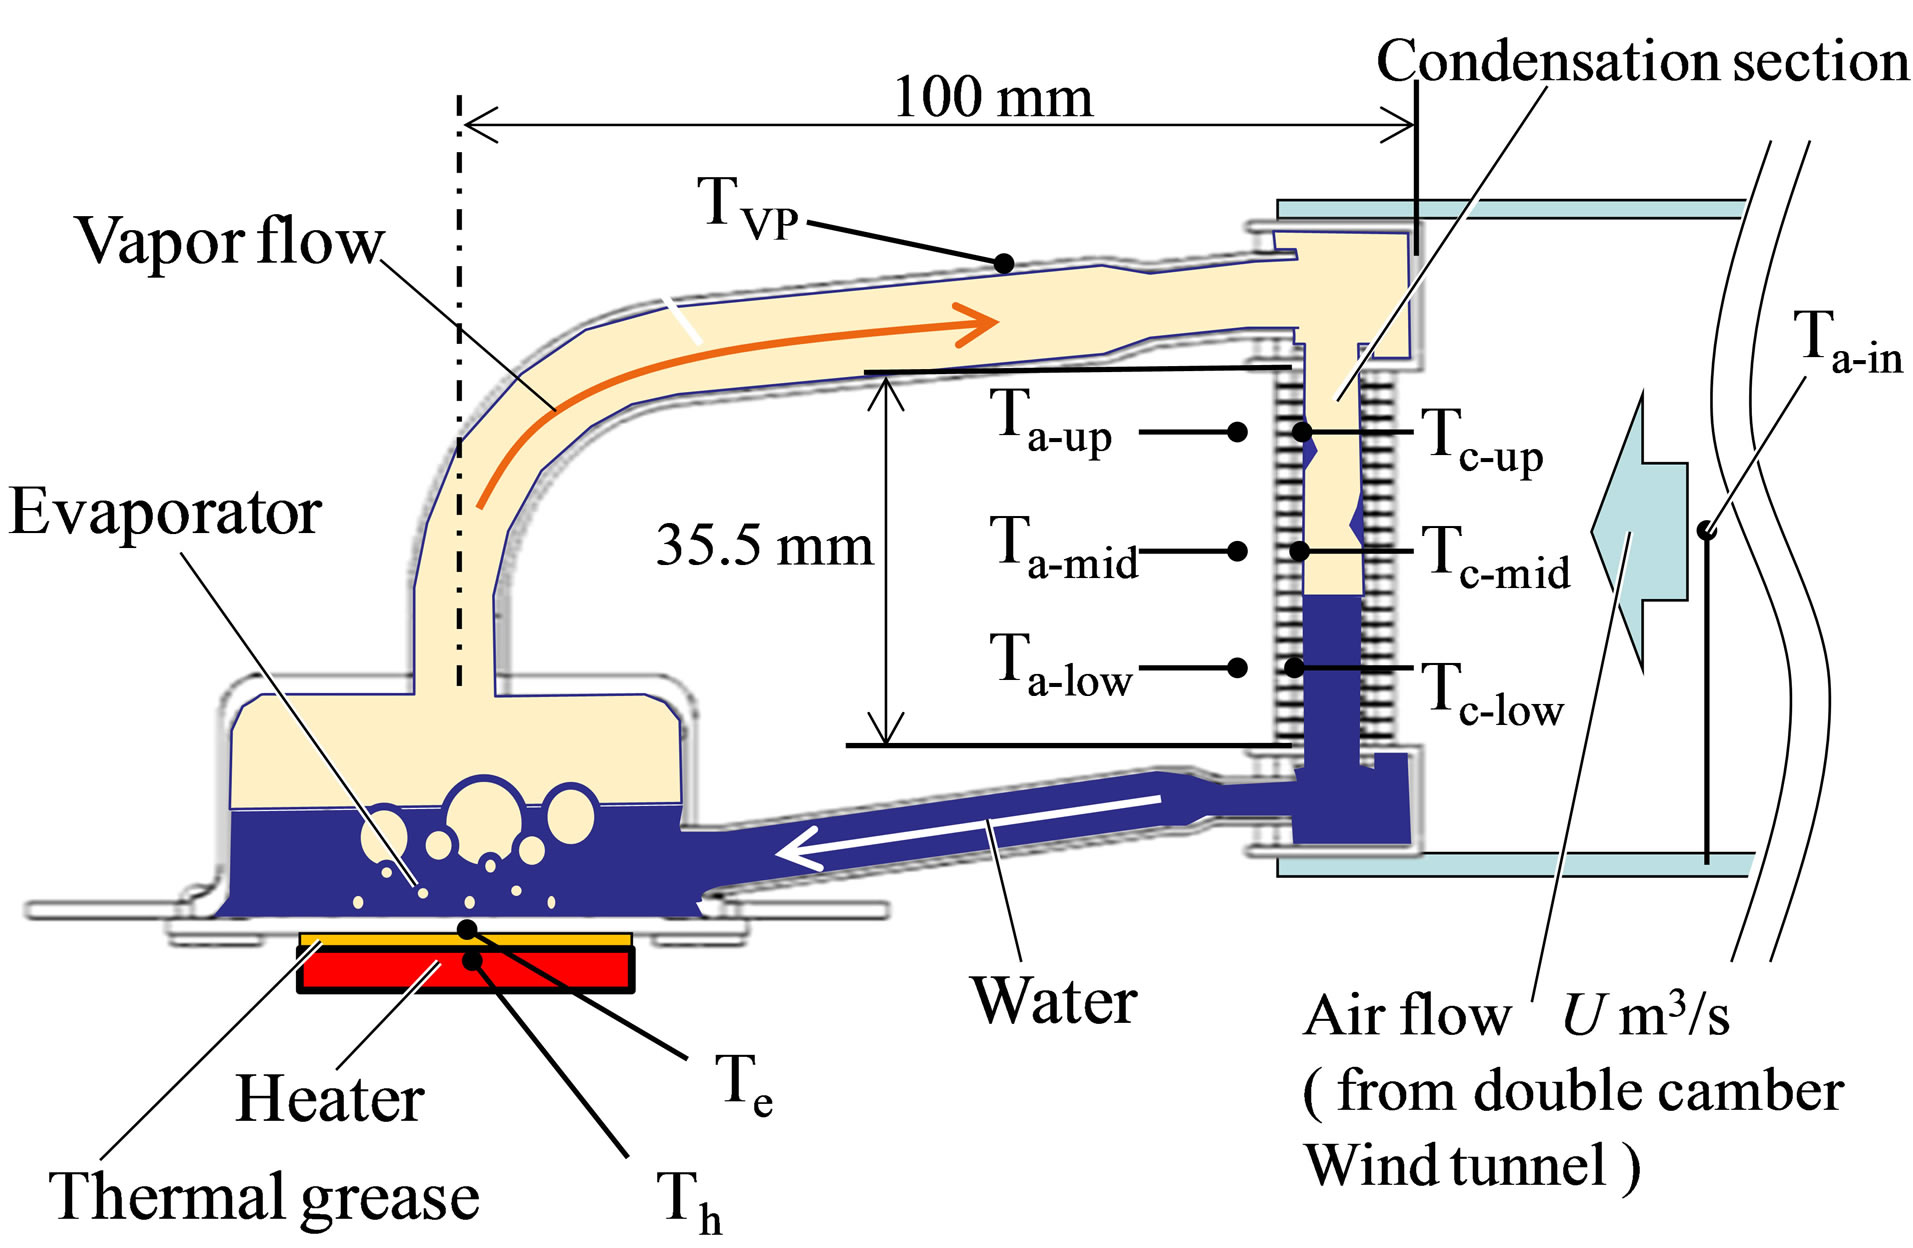 Effect of Non Condensable Gas Leakage on Long Term Cooling